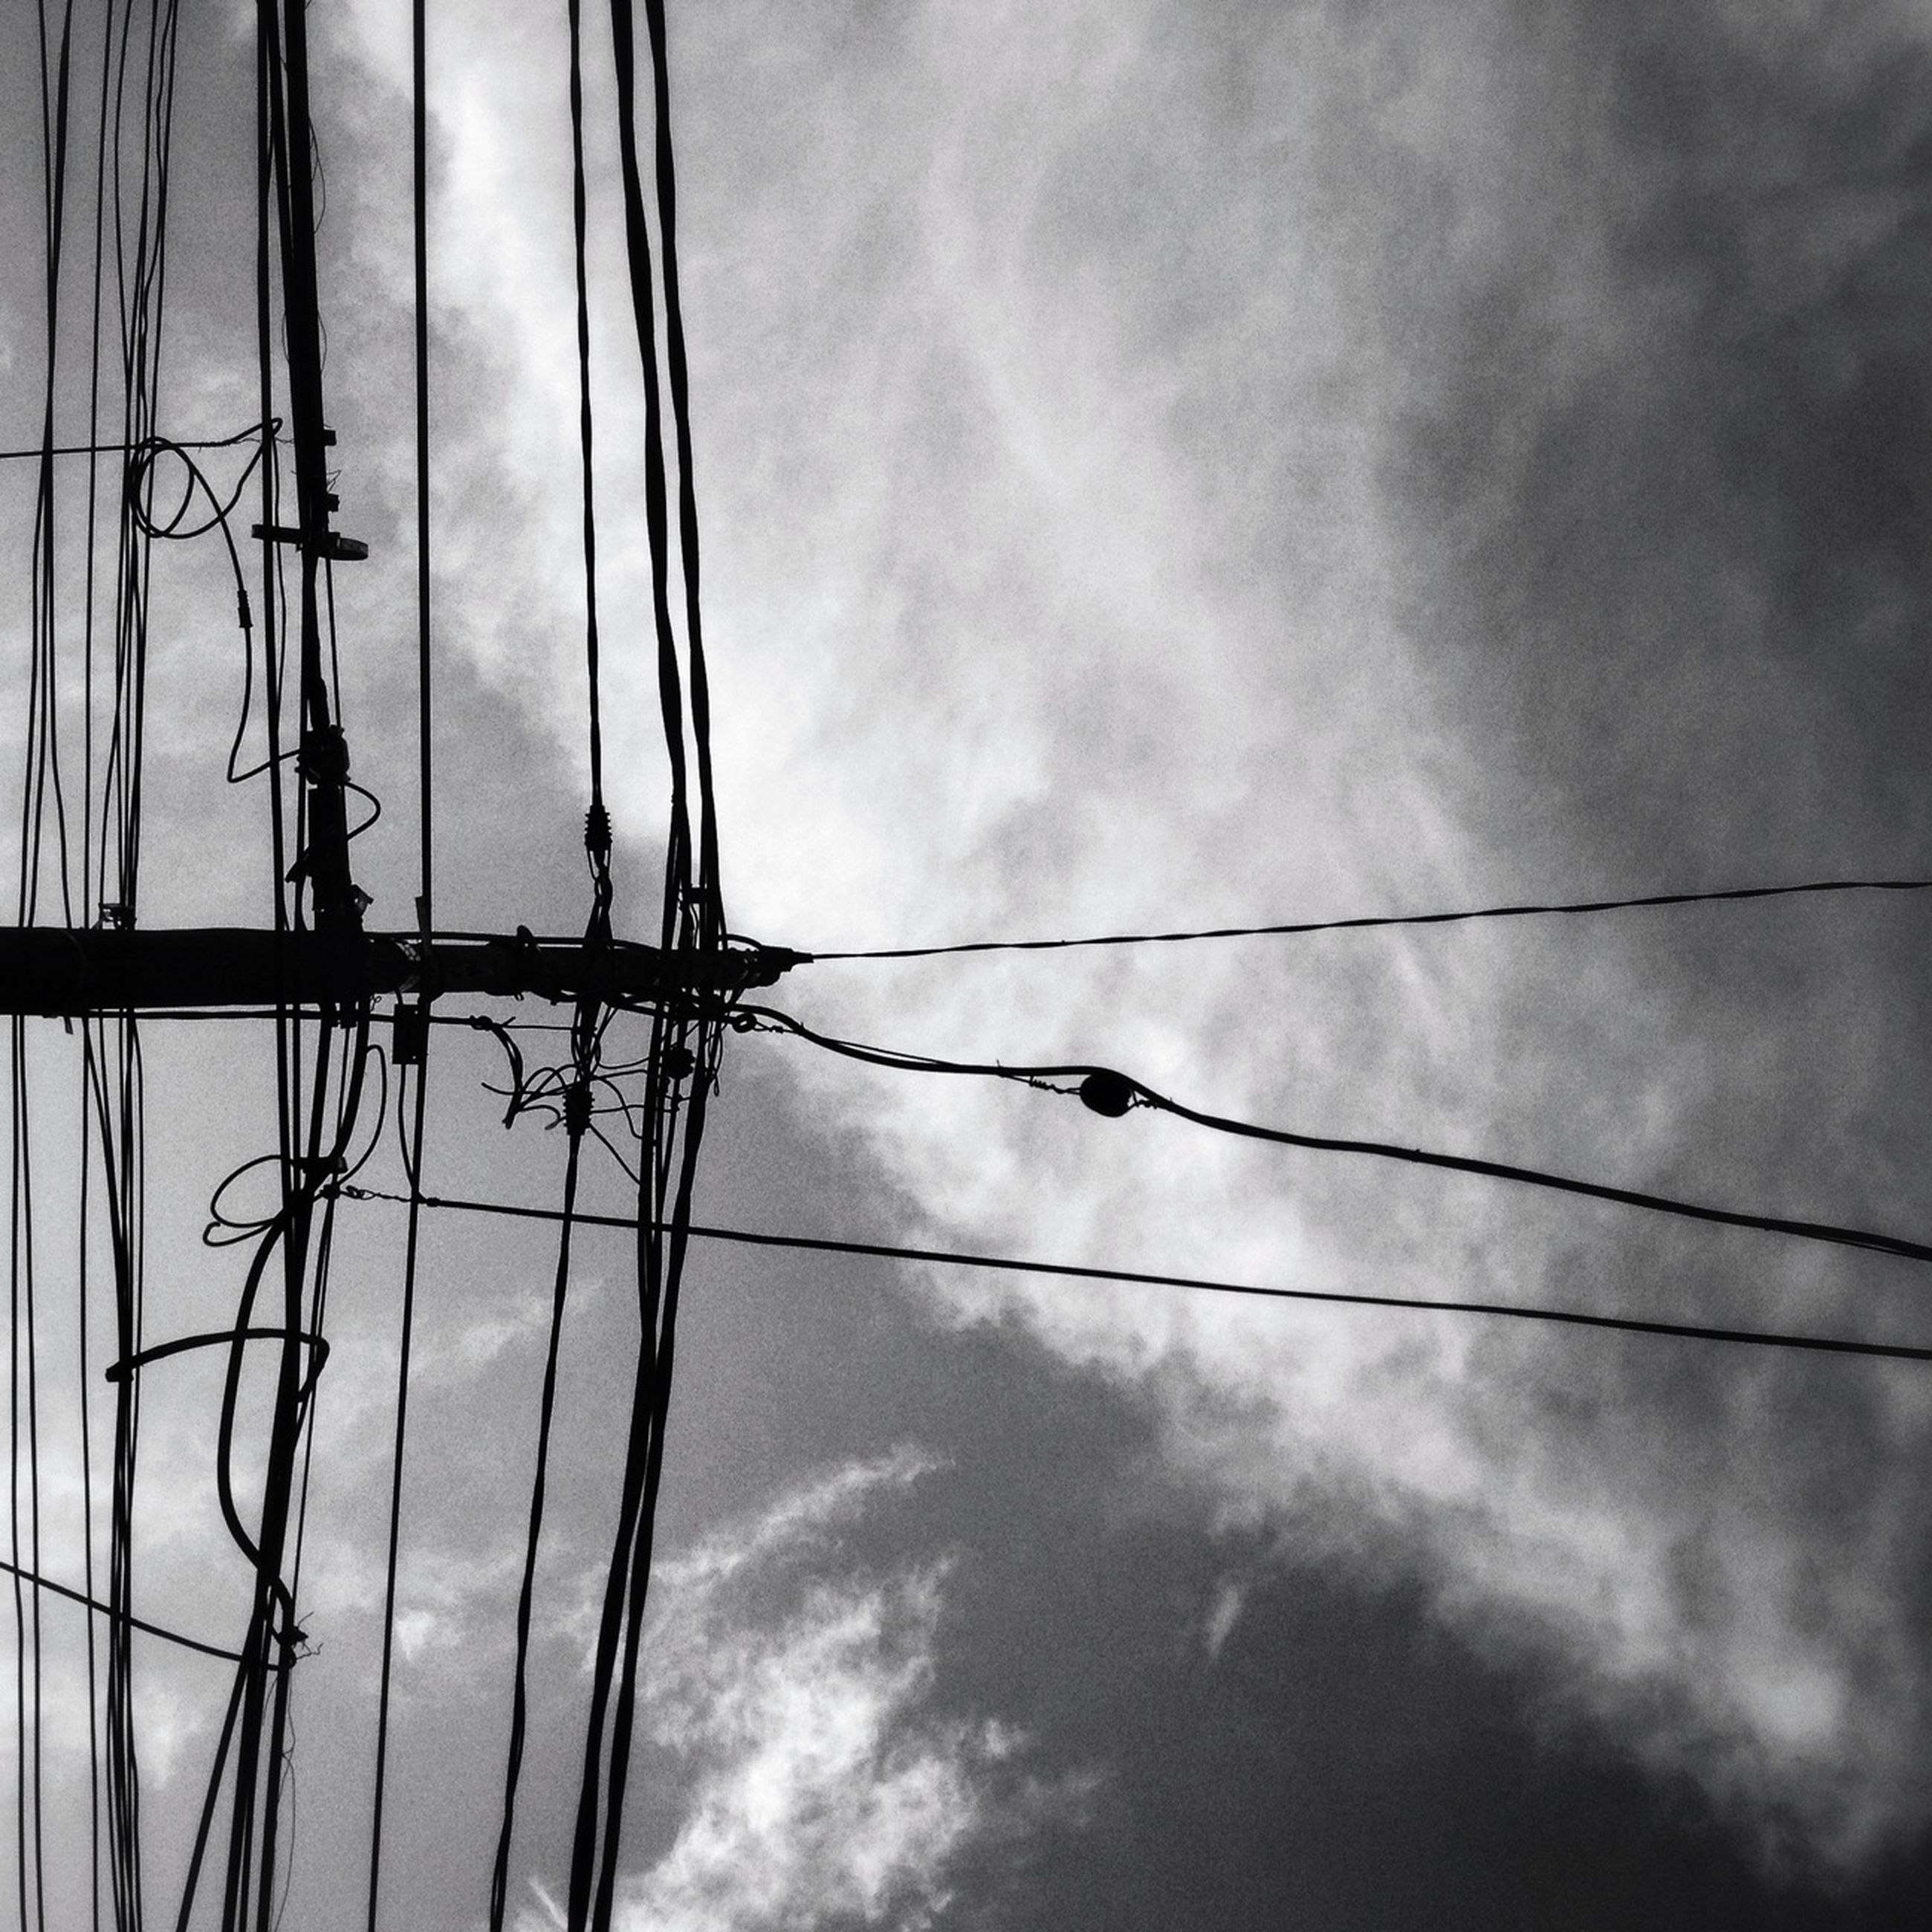 power line, low angle view, power supply, electricity, electricity pylon, cable, sky, connection, fuel and power generation, cloud - sky, technology, cloudy, power cable, cloud, silhouette, complexity, no people, outdoors, nature, pole